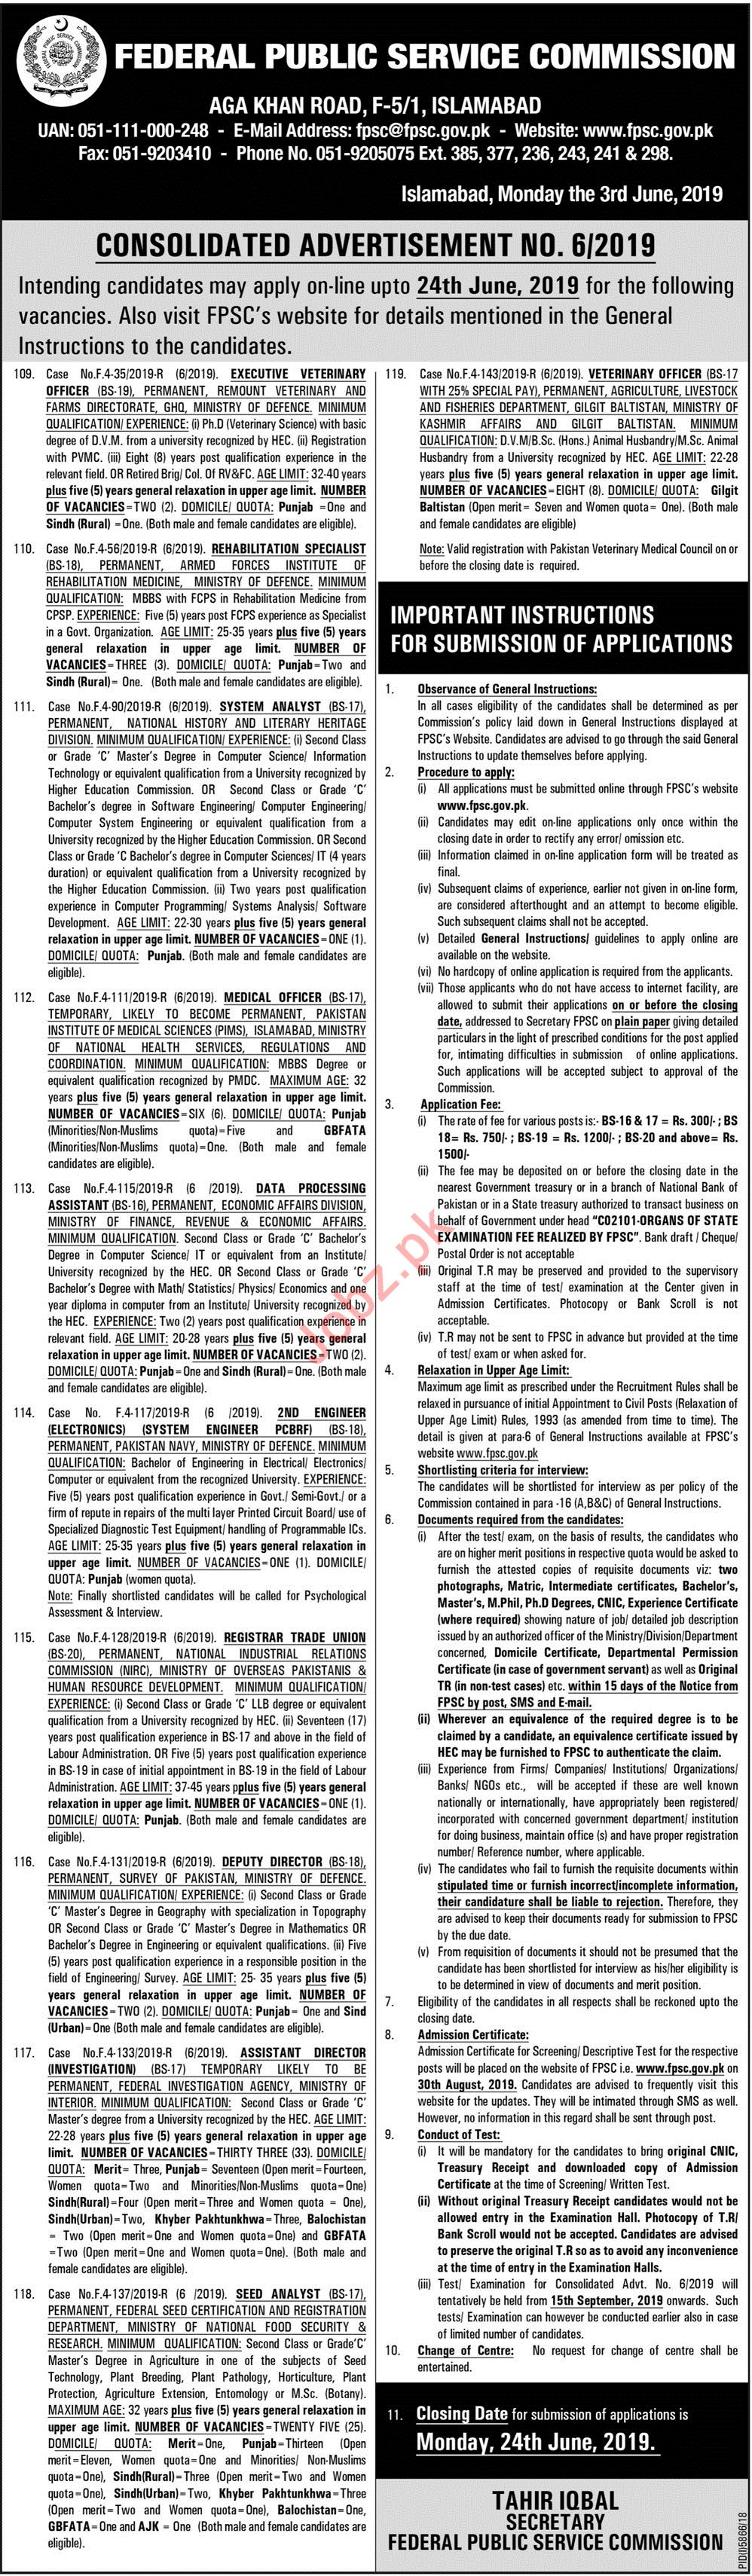 FPSC Federal Public Service Commission Islamabad Jobs 2019